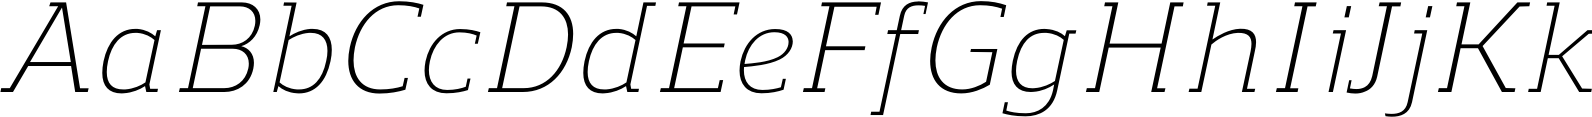 Regan Slab Light Italic Font